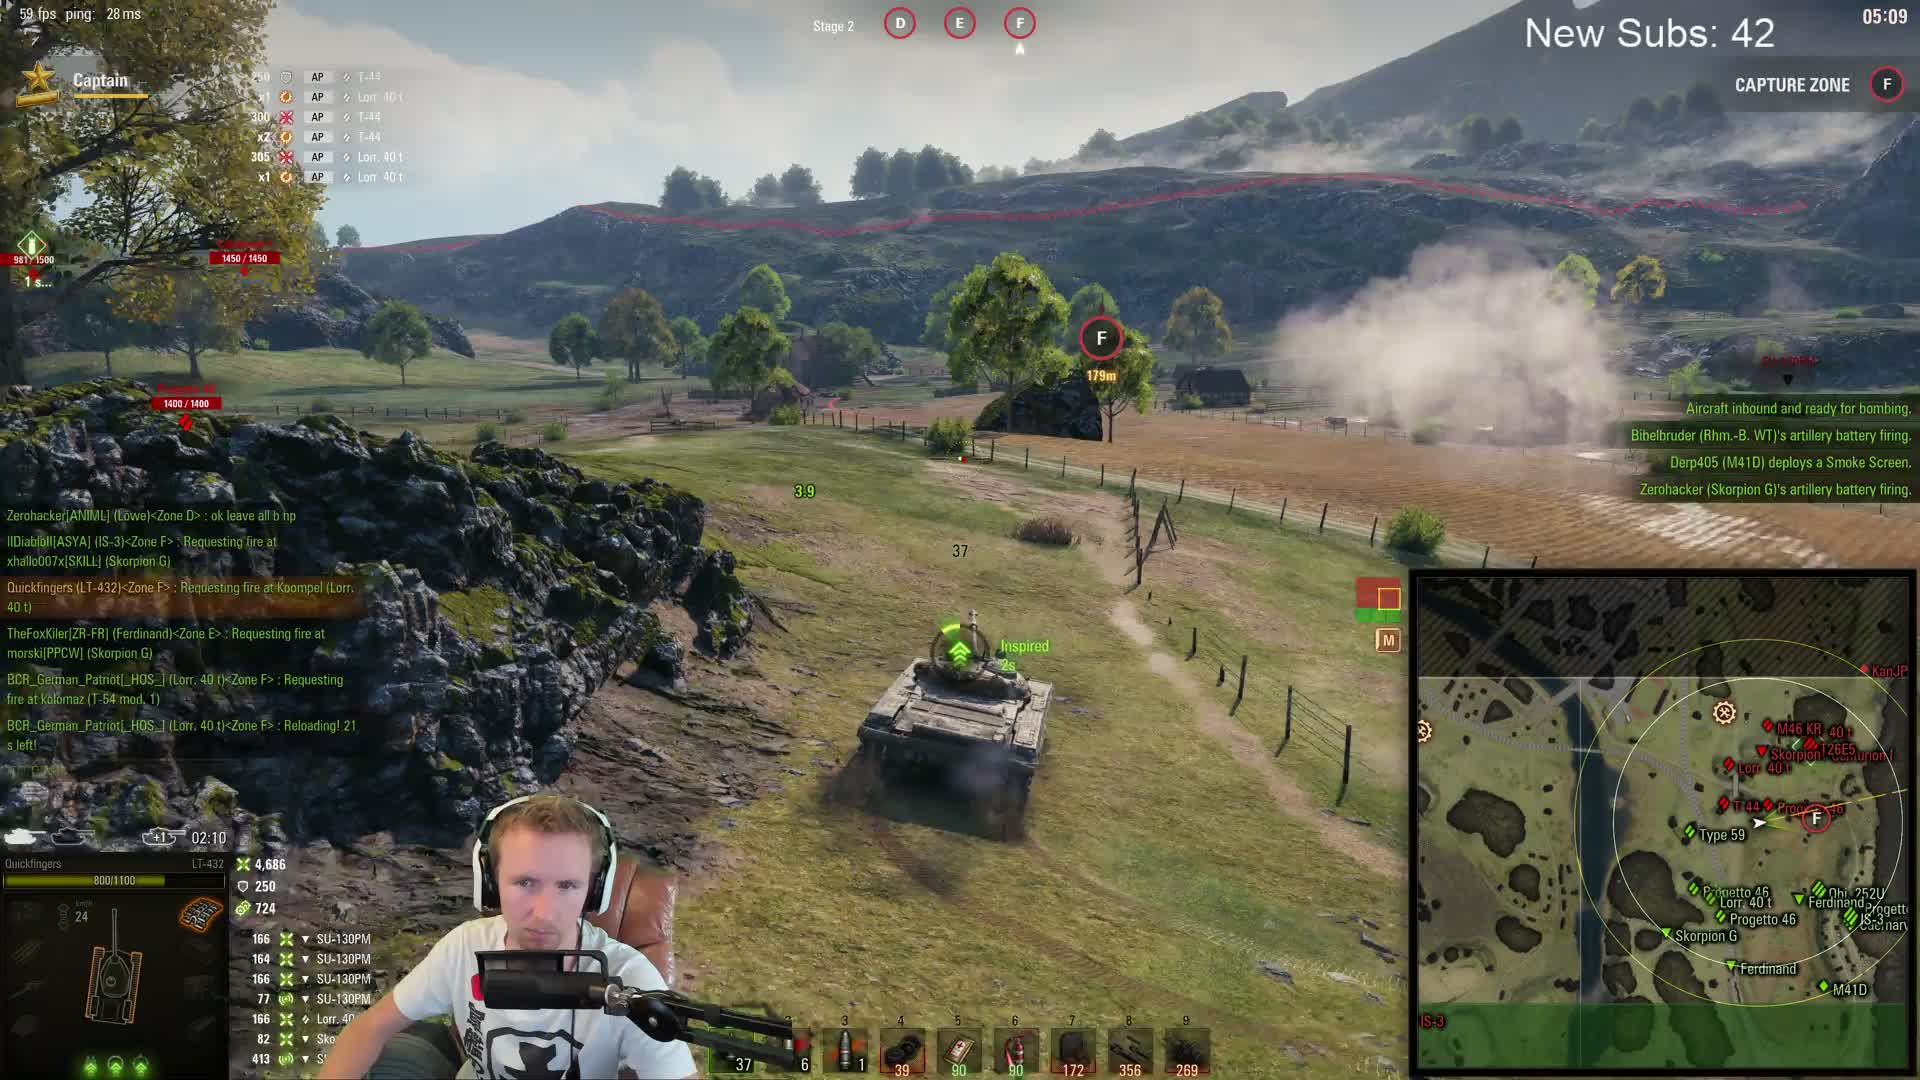 QuickyBaby - top giggle, 10 out of 10 - Twitch